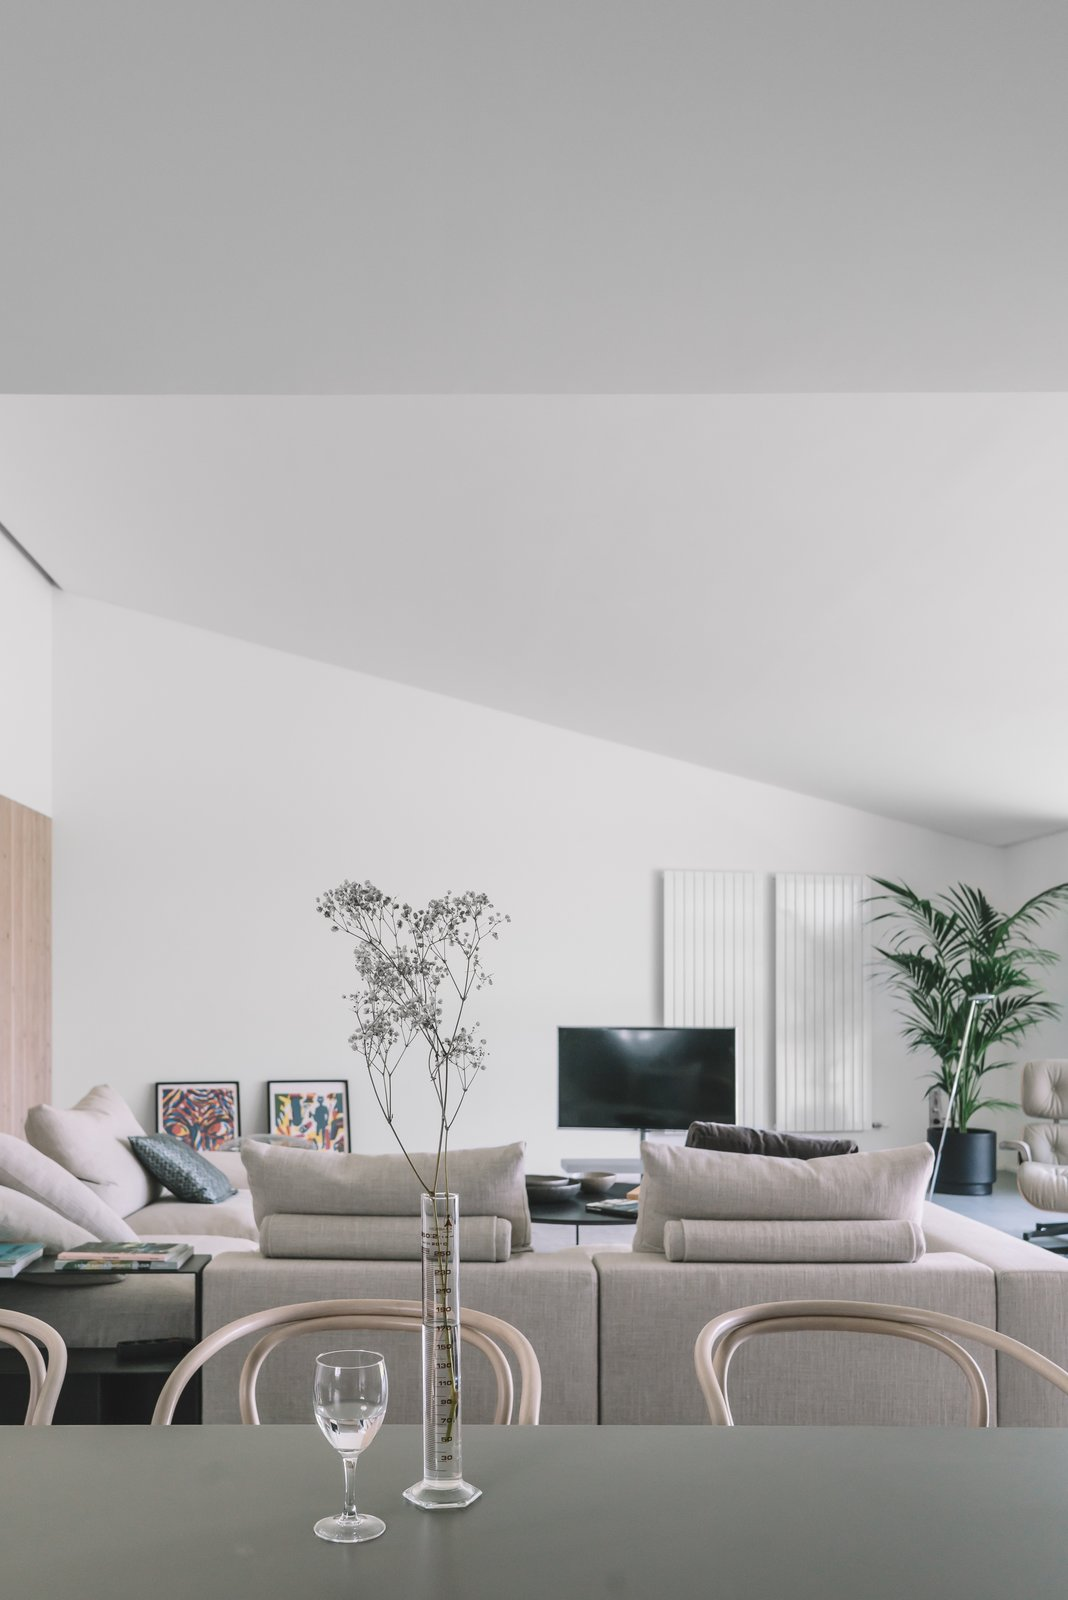 Tagged: Sofa, Recliner, Ottomans, Chair, Wall Lighting, Dining Room, and Table.  The Öcher House by MLMR Architecture Consultancy